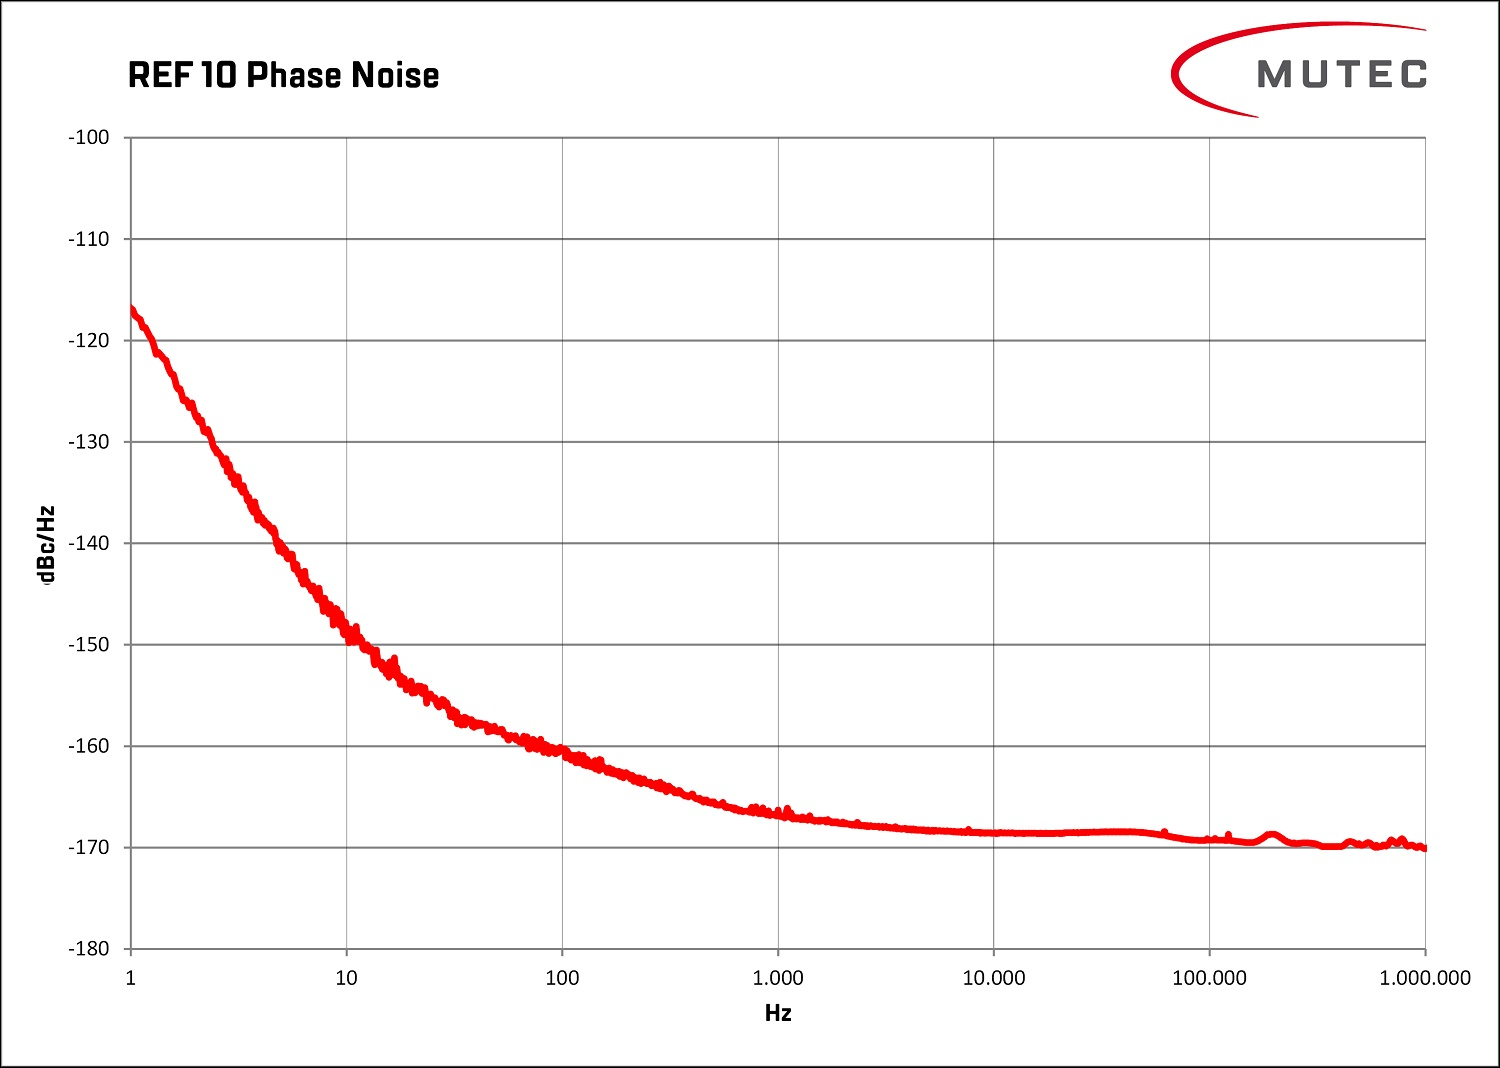 Phase noise, measured at REF10's outputs